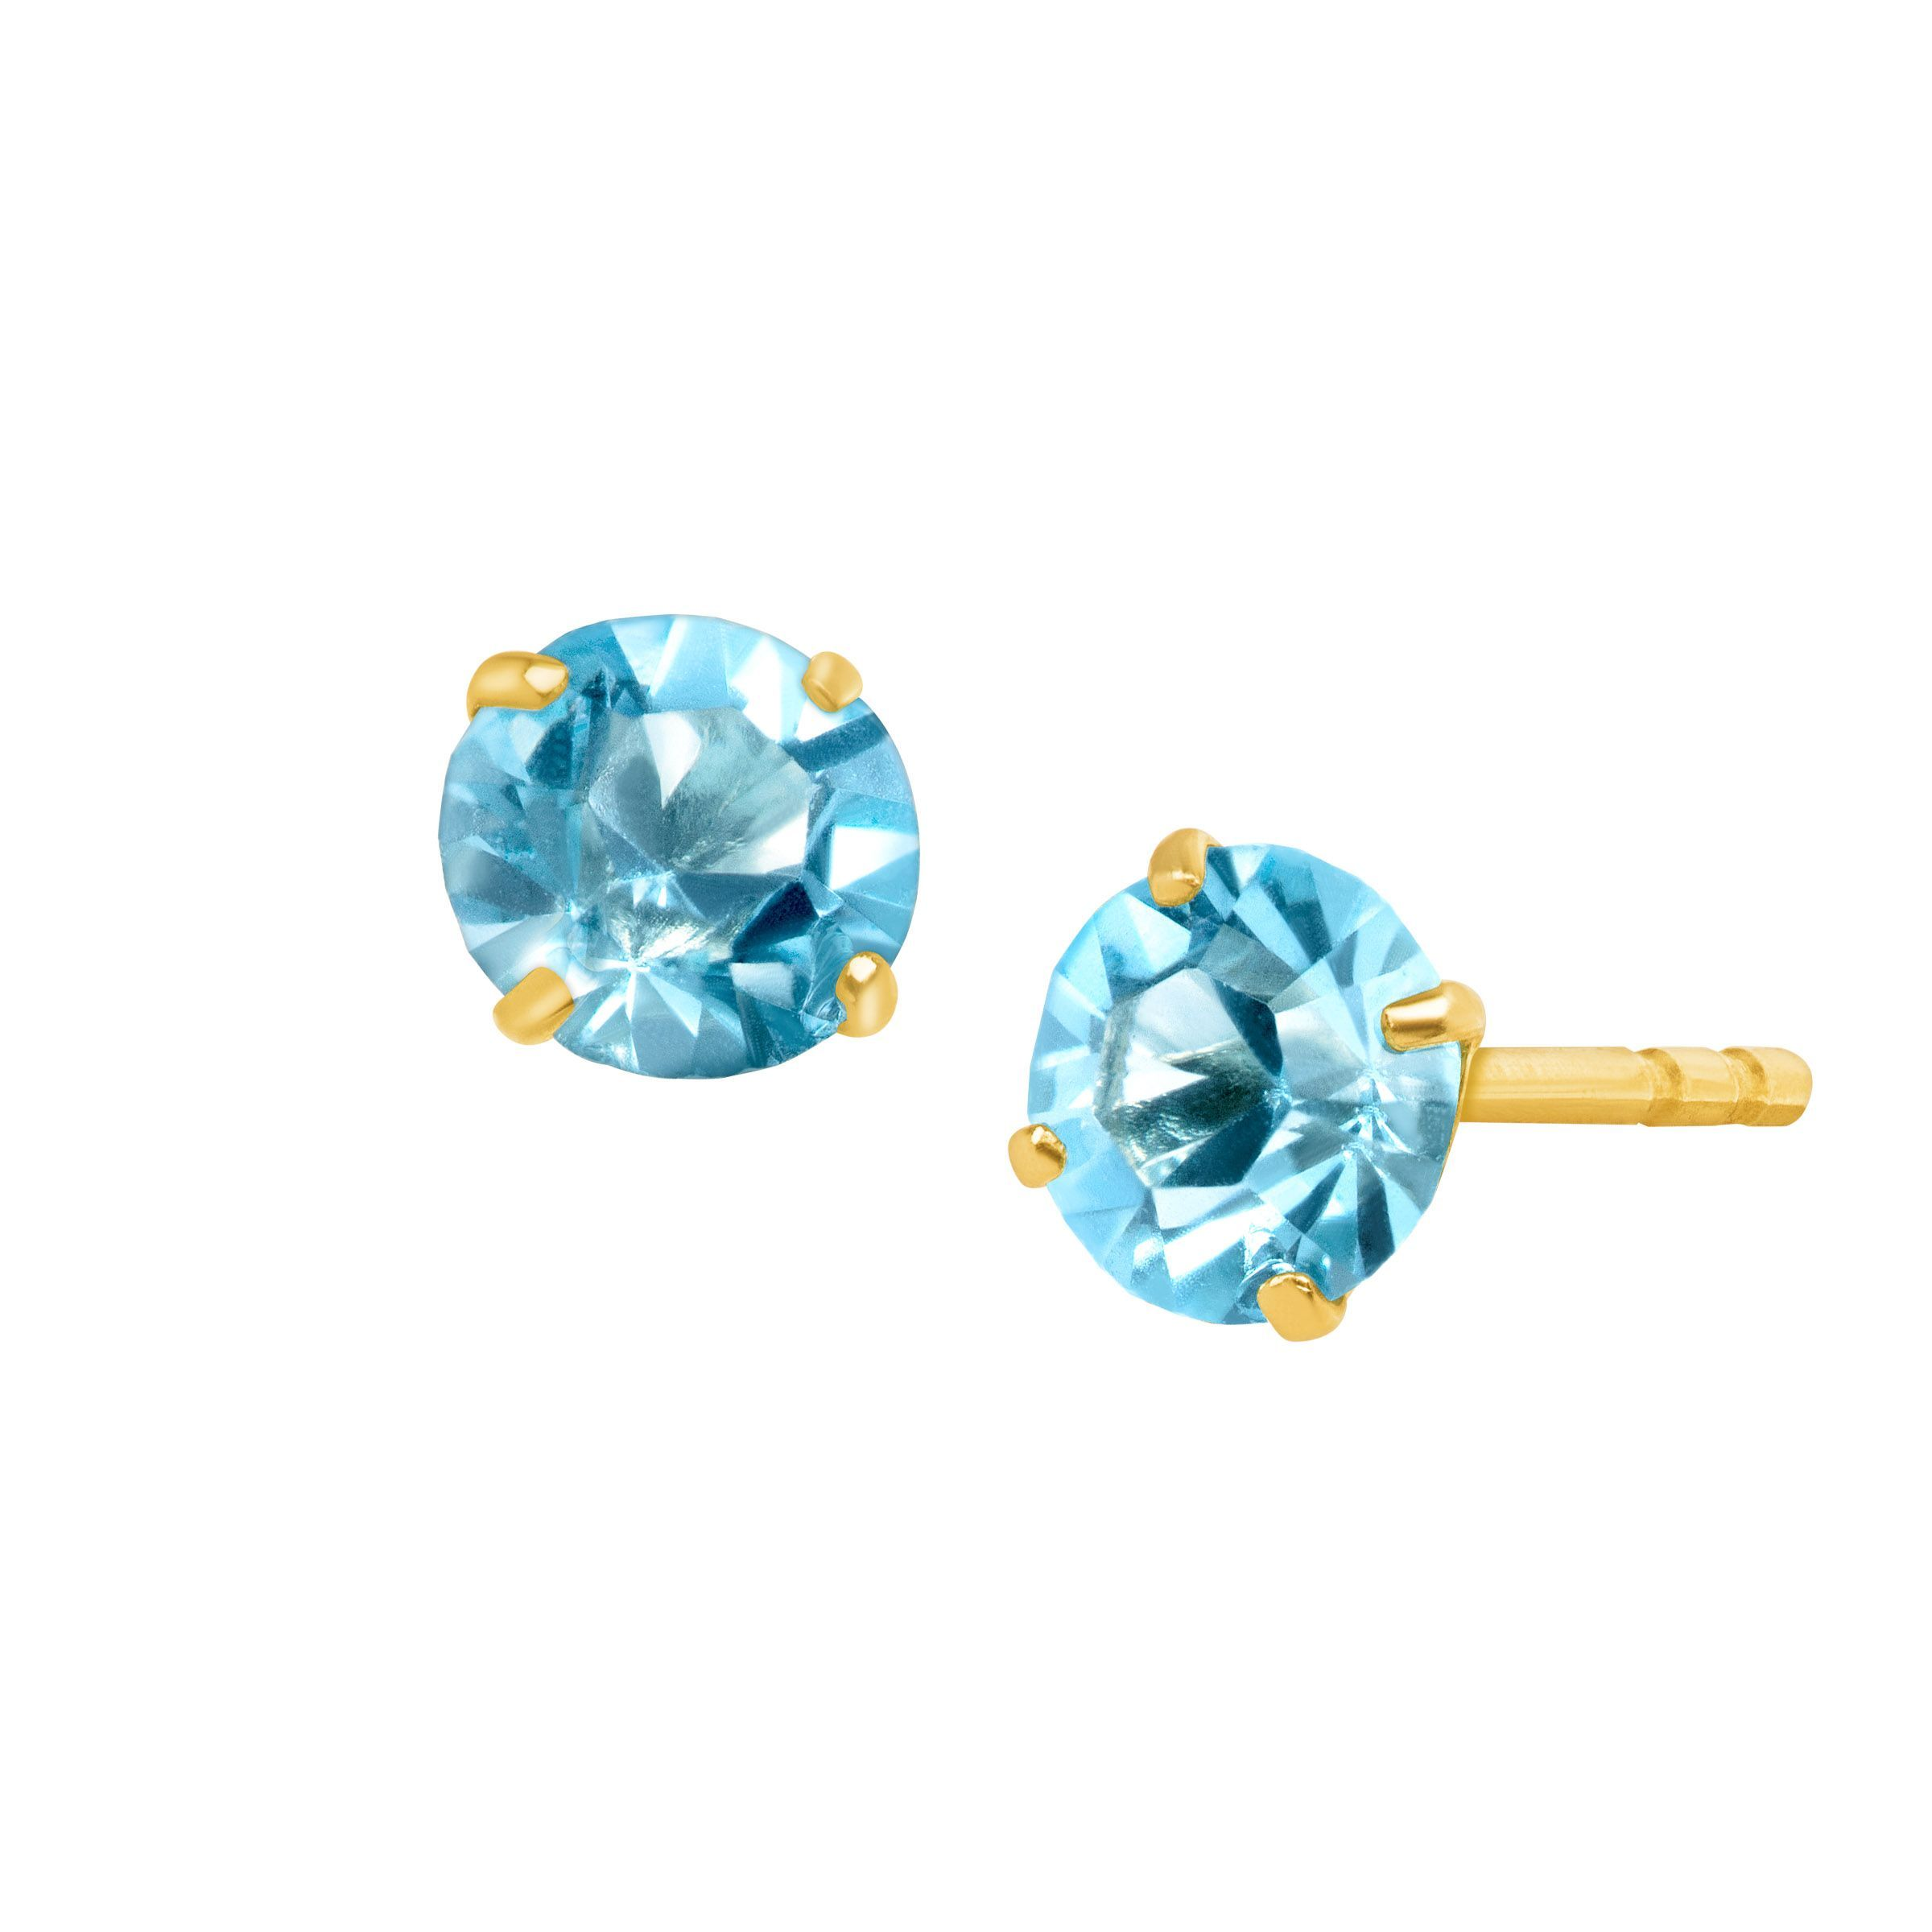 gold rose s lyst le aqua women aquamarine earrings diamond exotics metallic vian stud jewelry marine